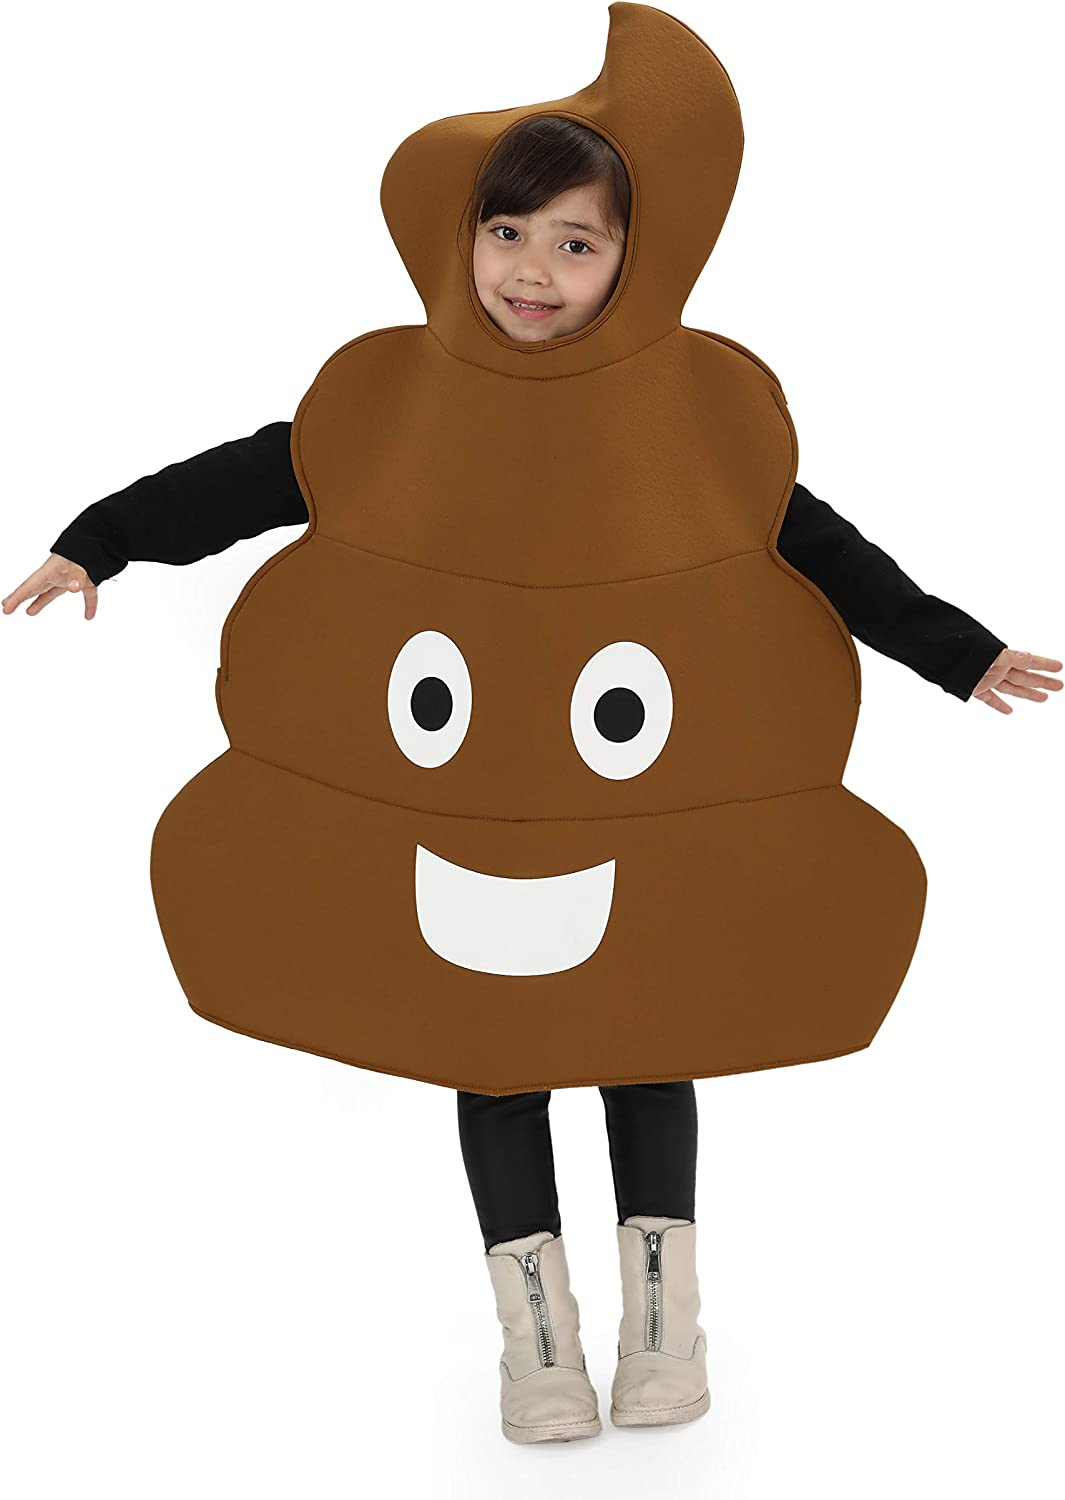 SPUNICOS Child's Poop Costume Funny Costume for Halloween,Christmas Costumes for Boys and Girls